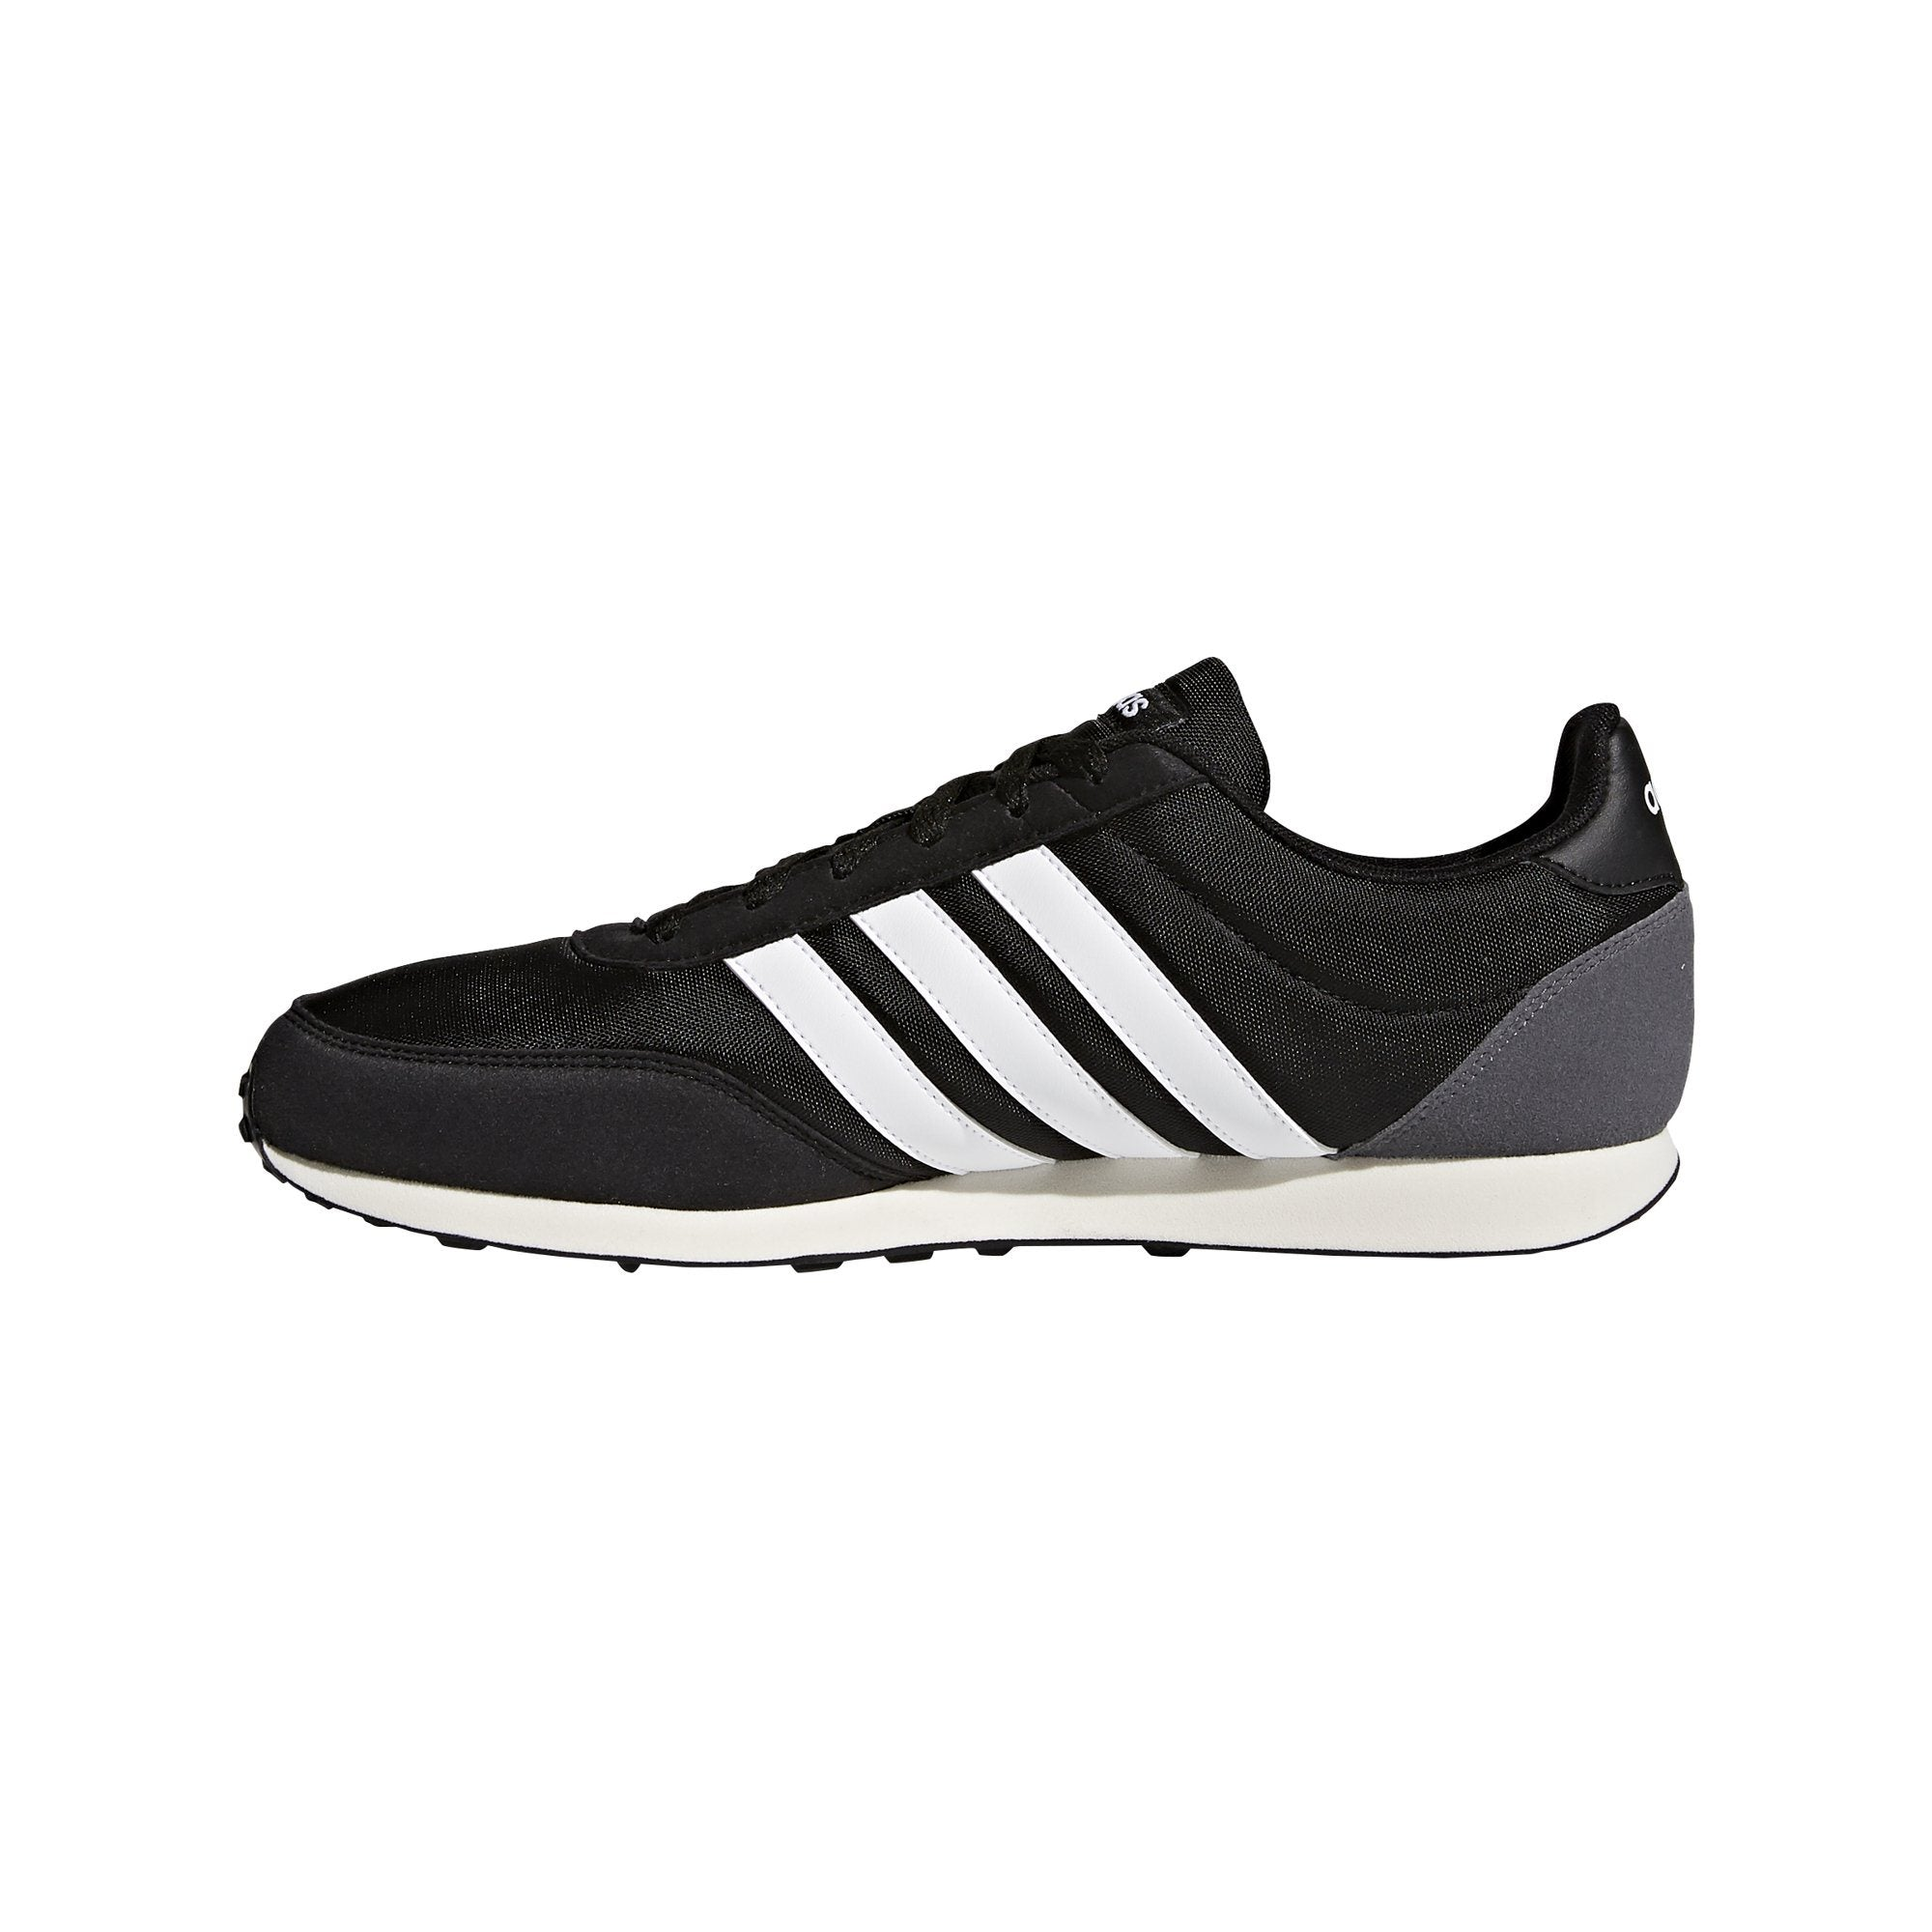 Adidas Mens V Racer 2.0 Shoes - core black/ftwr white/grey five SP-Footwear-Mens Adidas